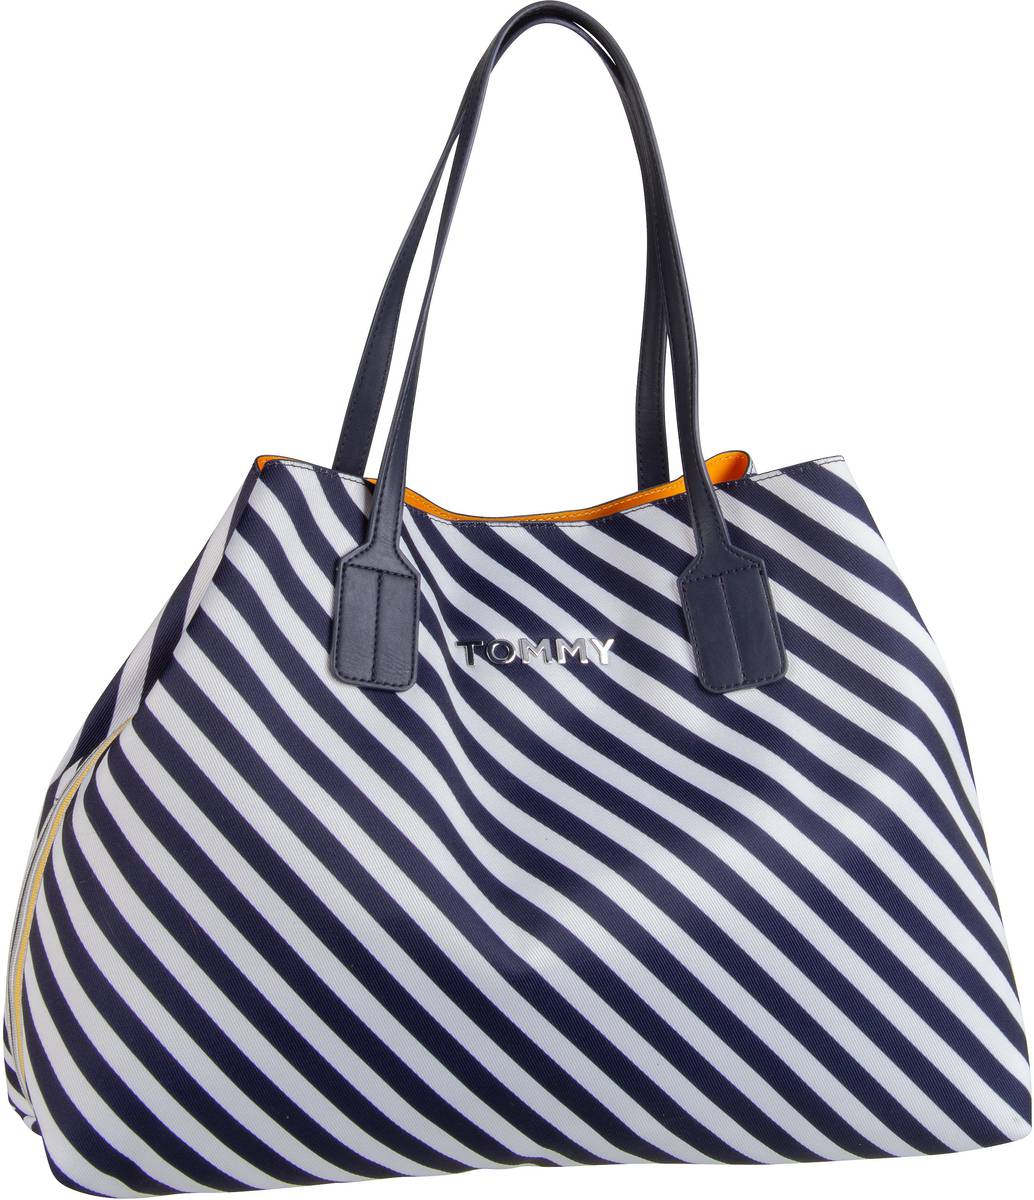 Handtasche Cool Tommy Tote 6374 Nautical Stripe